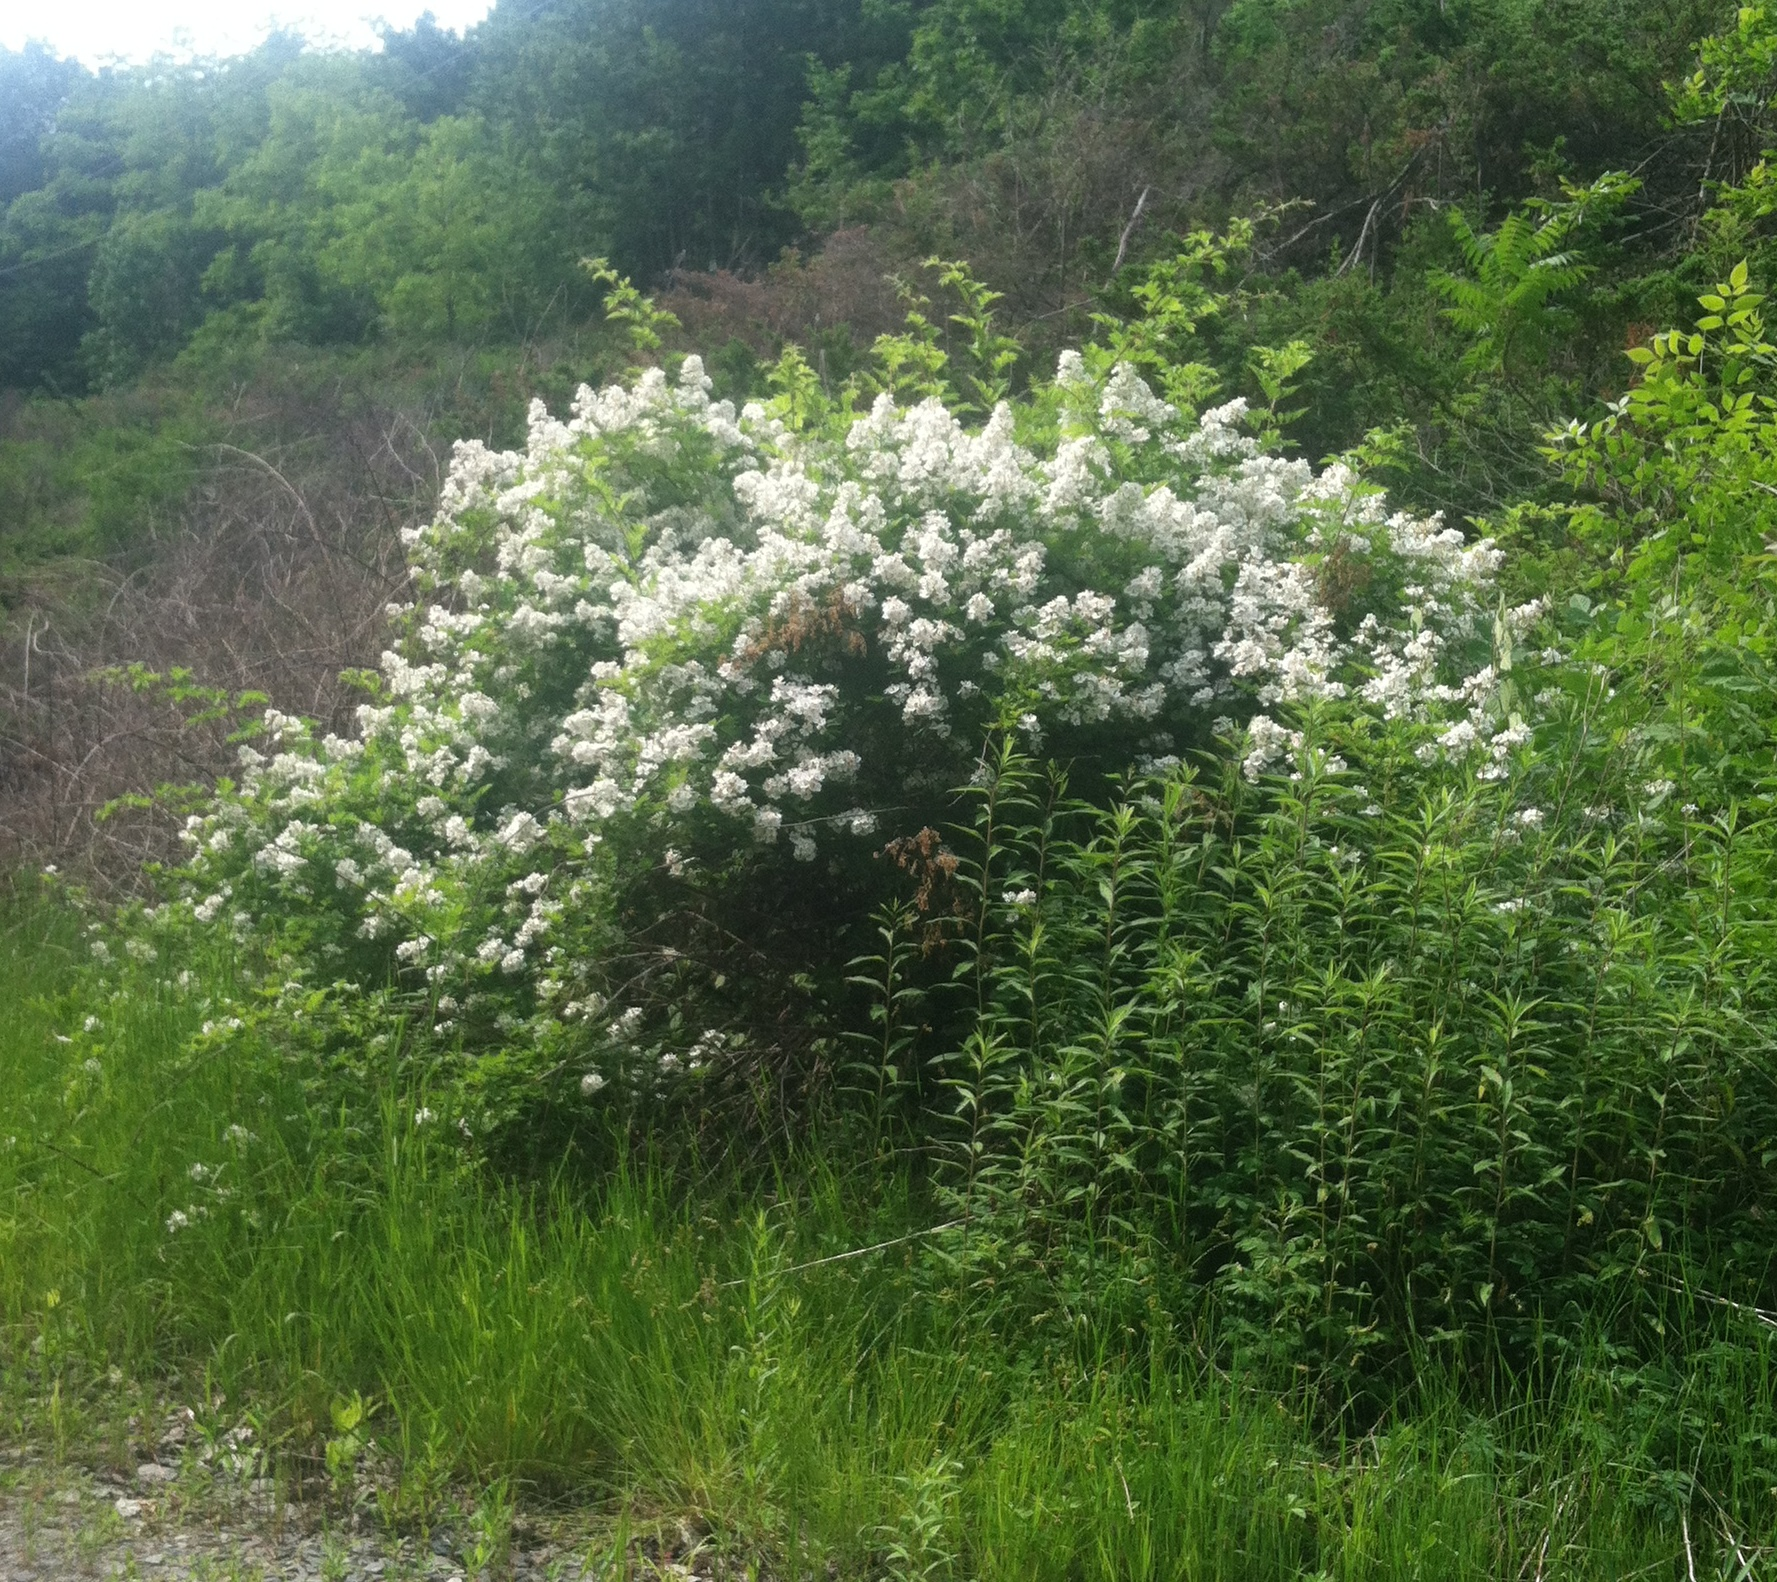 A flowering multiflora rose along a forest edge.